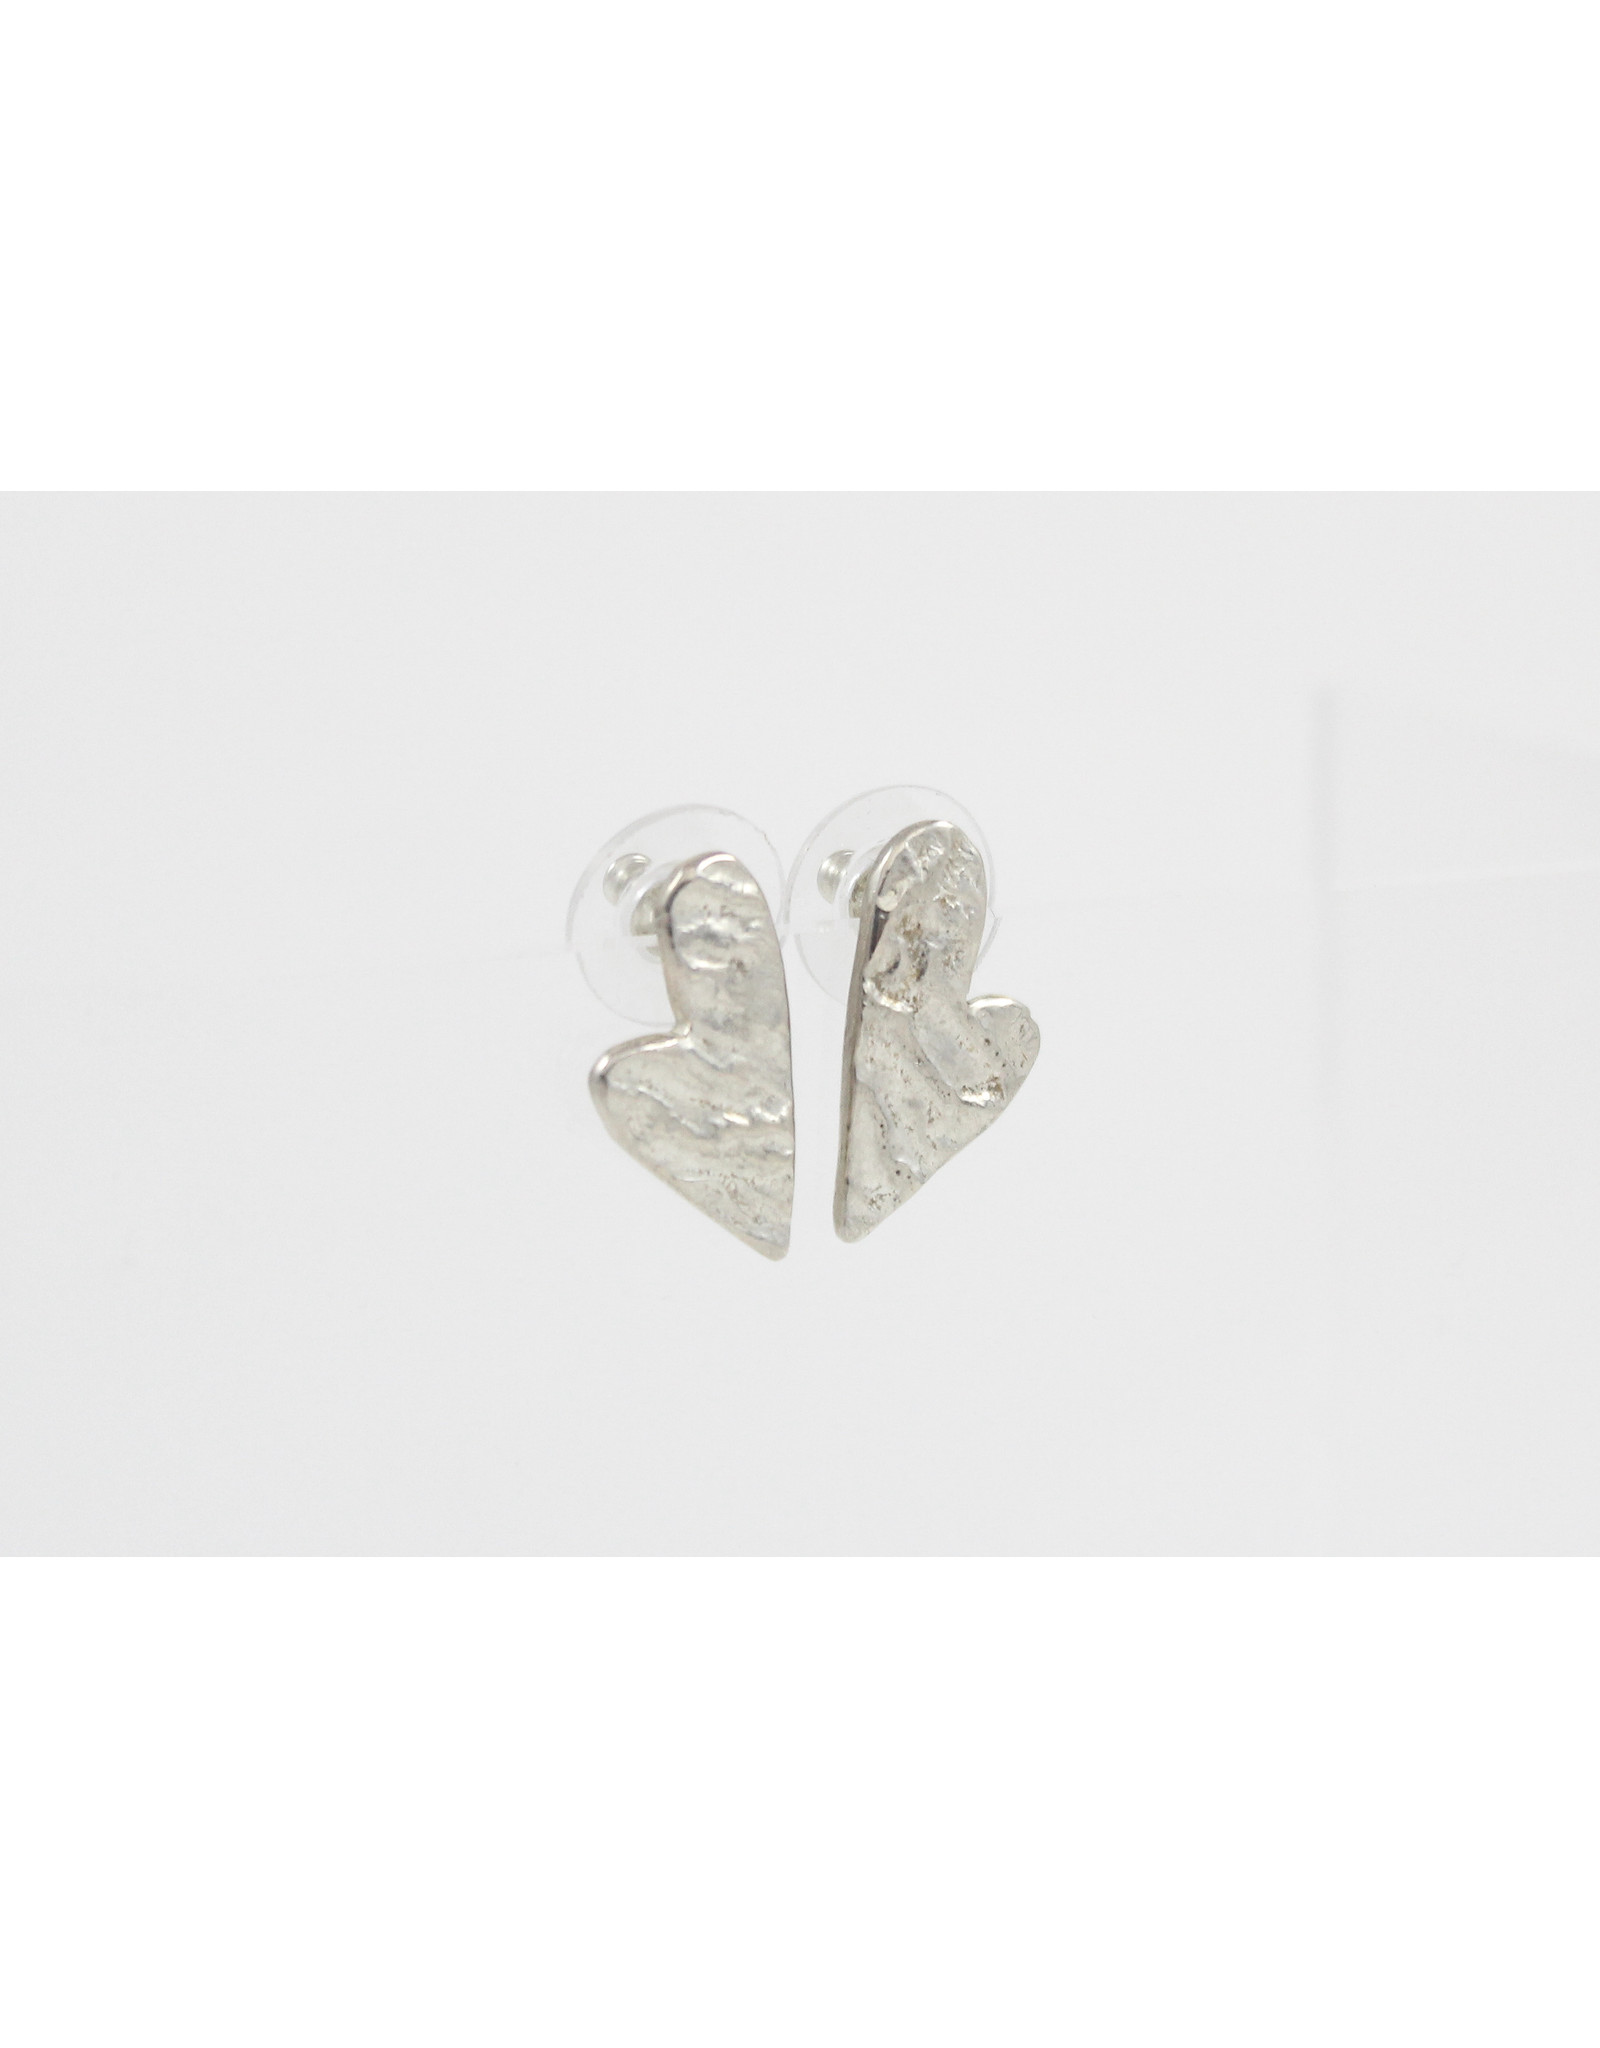 Karen Wawer Heart Stud Earrings by Karen Wawer